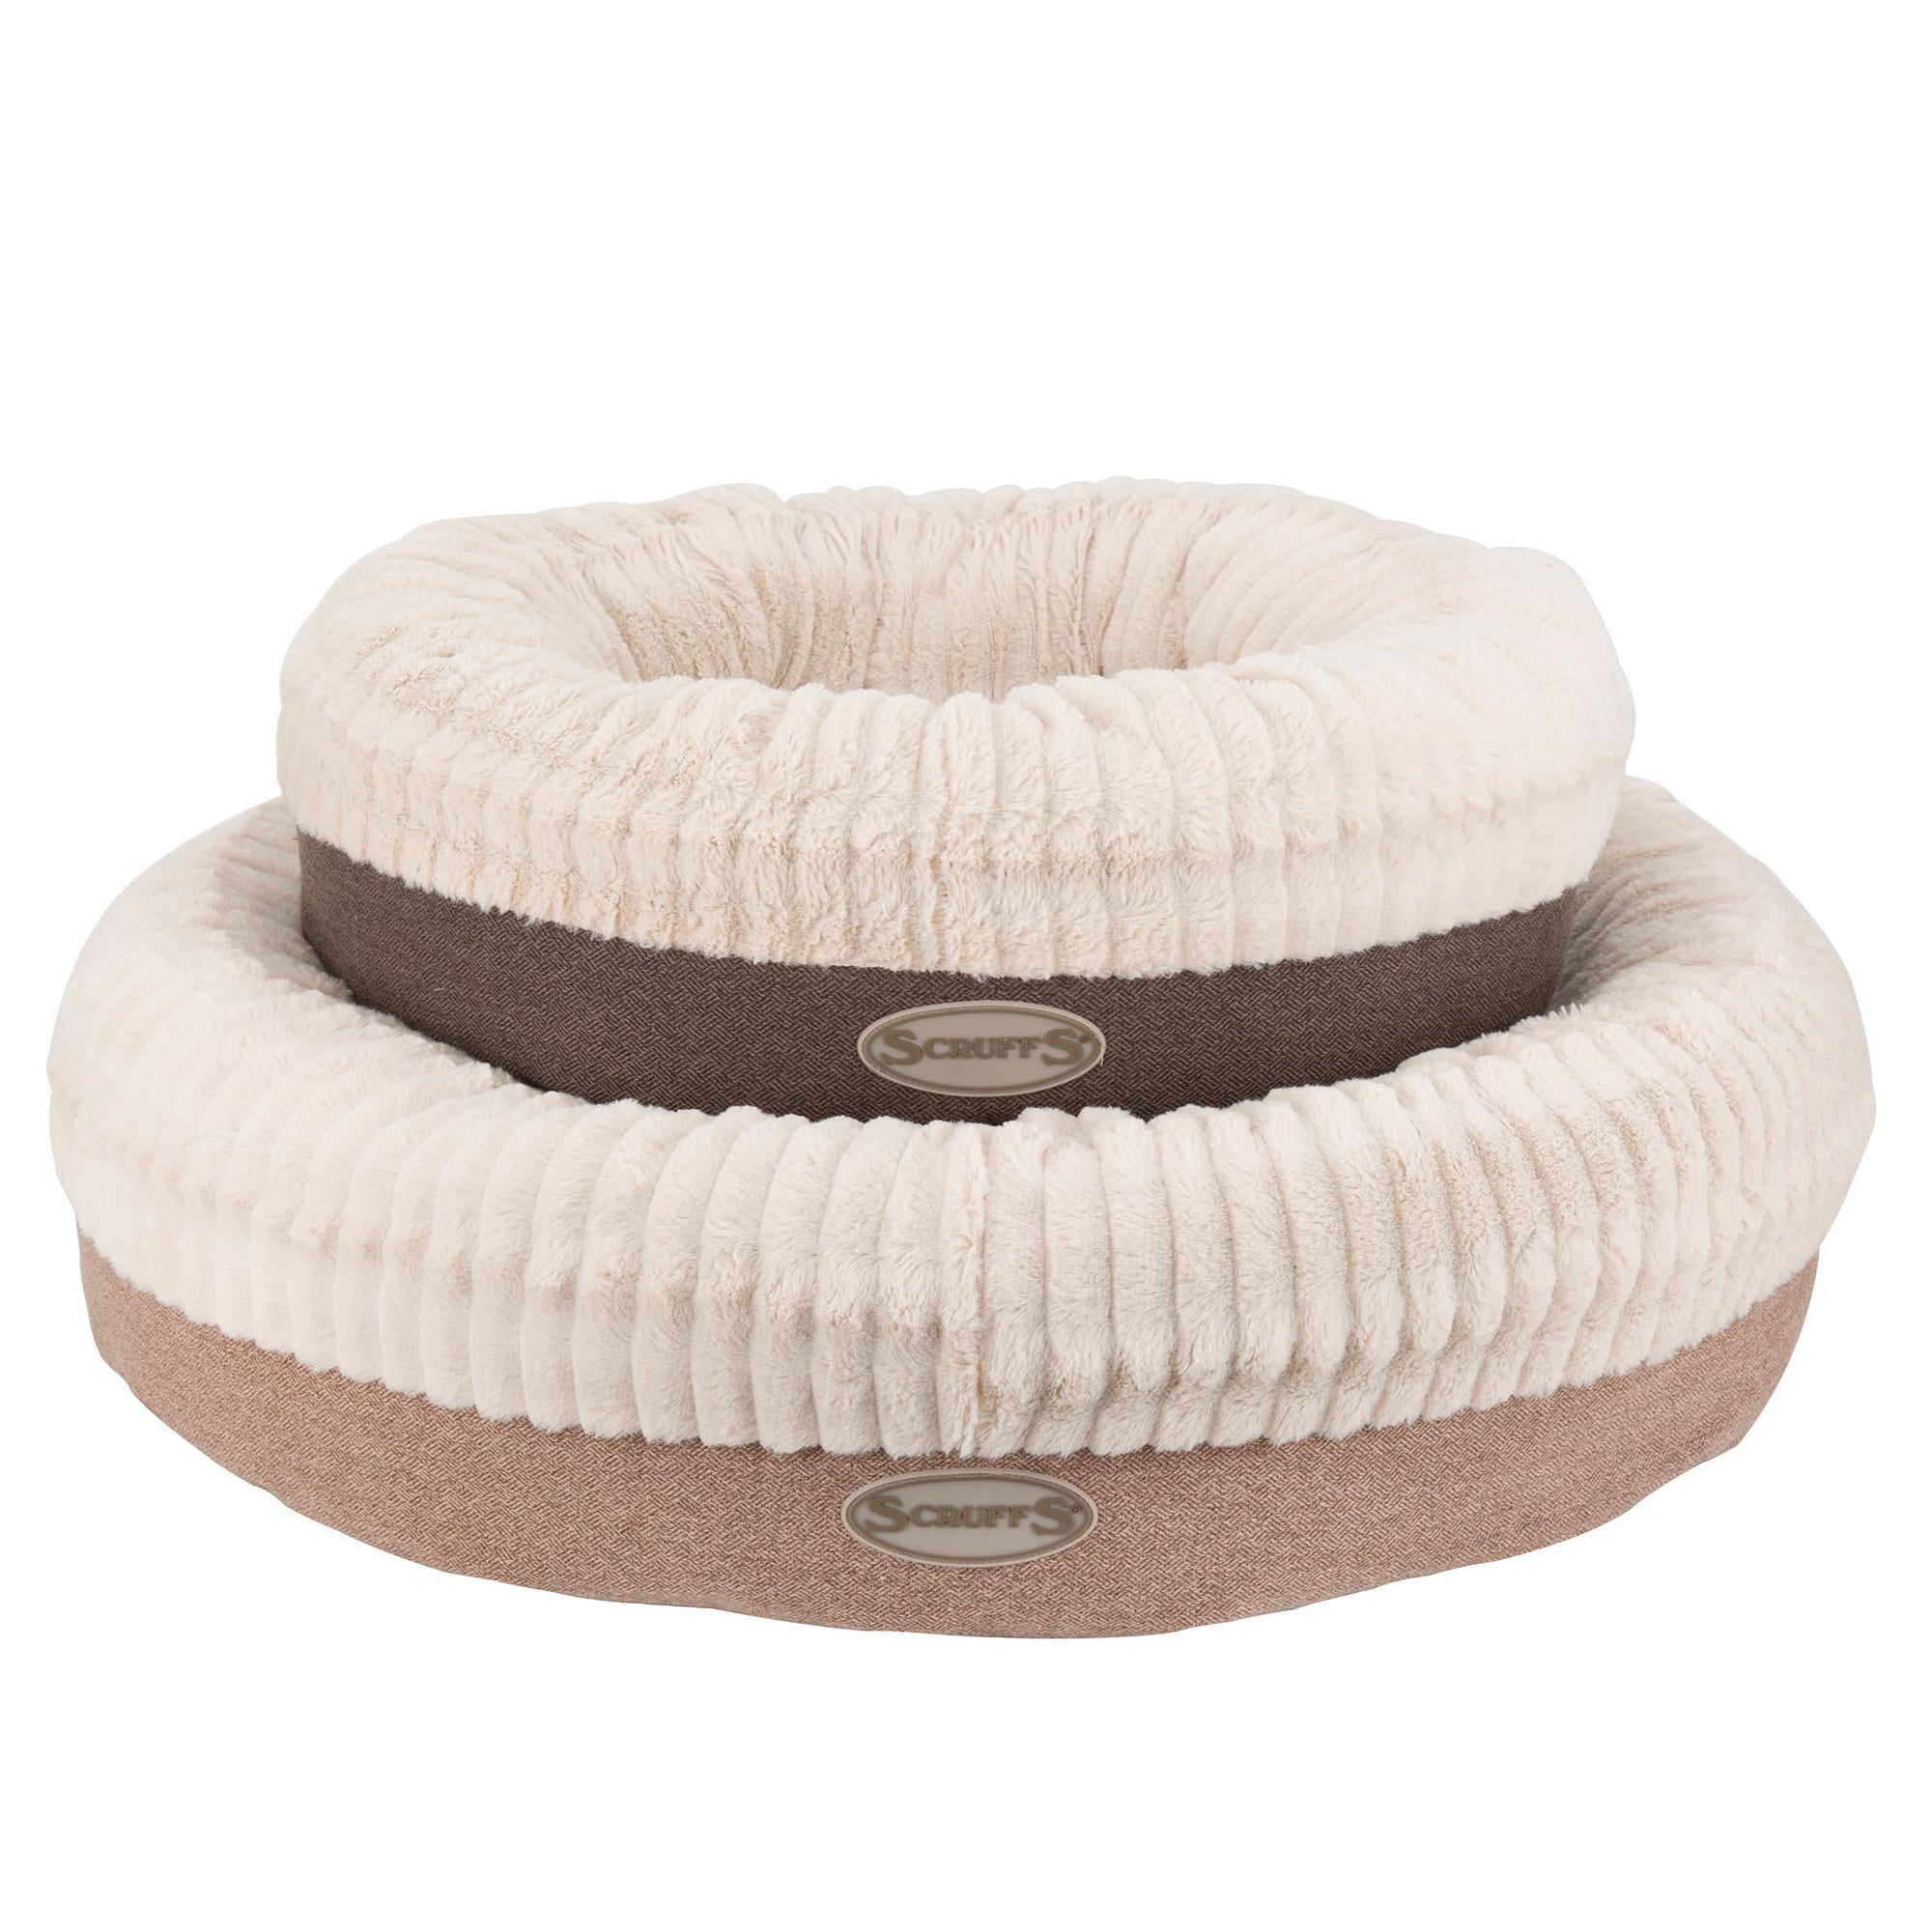 Ellen Donut Bed - ComfyPet Products